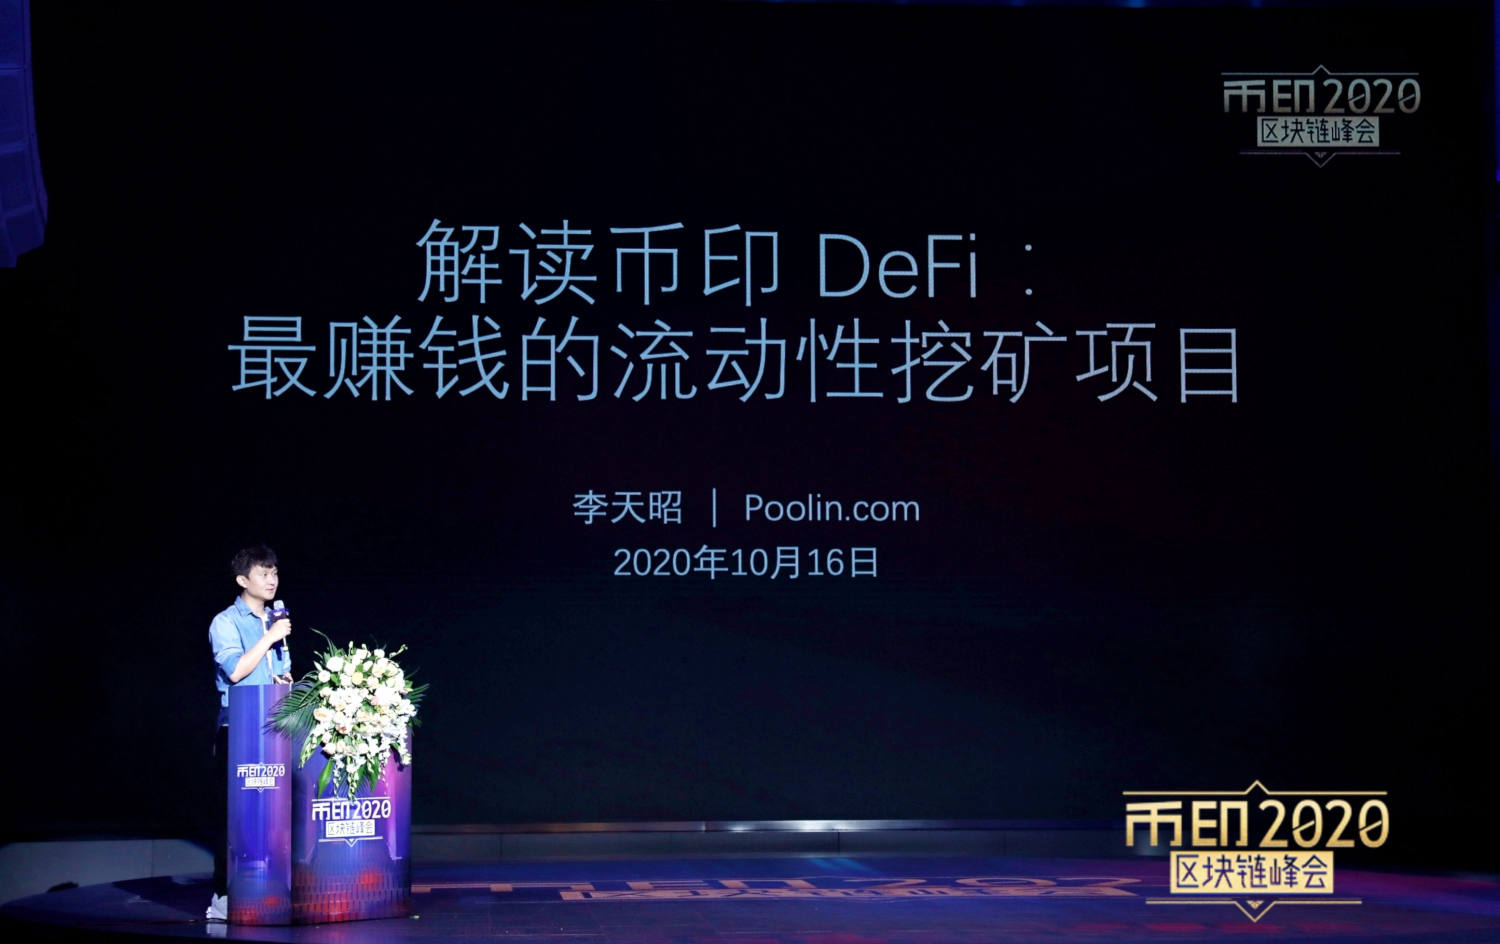 Tianzhao Lee, co-founder and CTO of Poolin